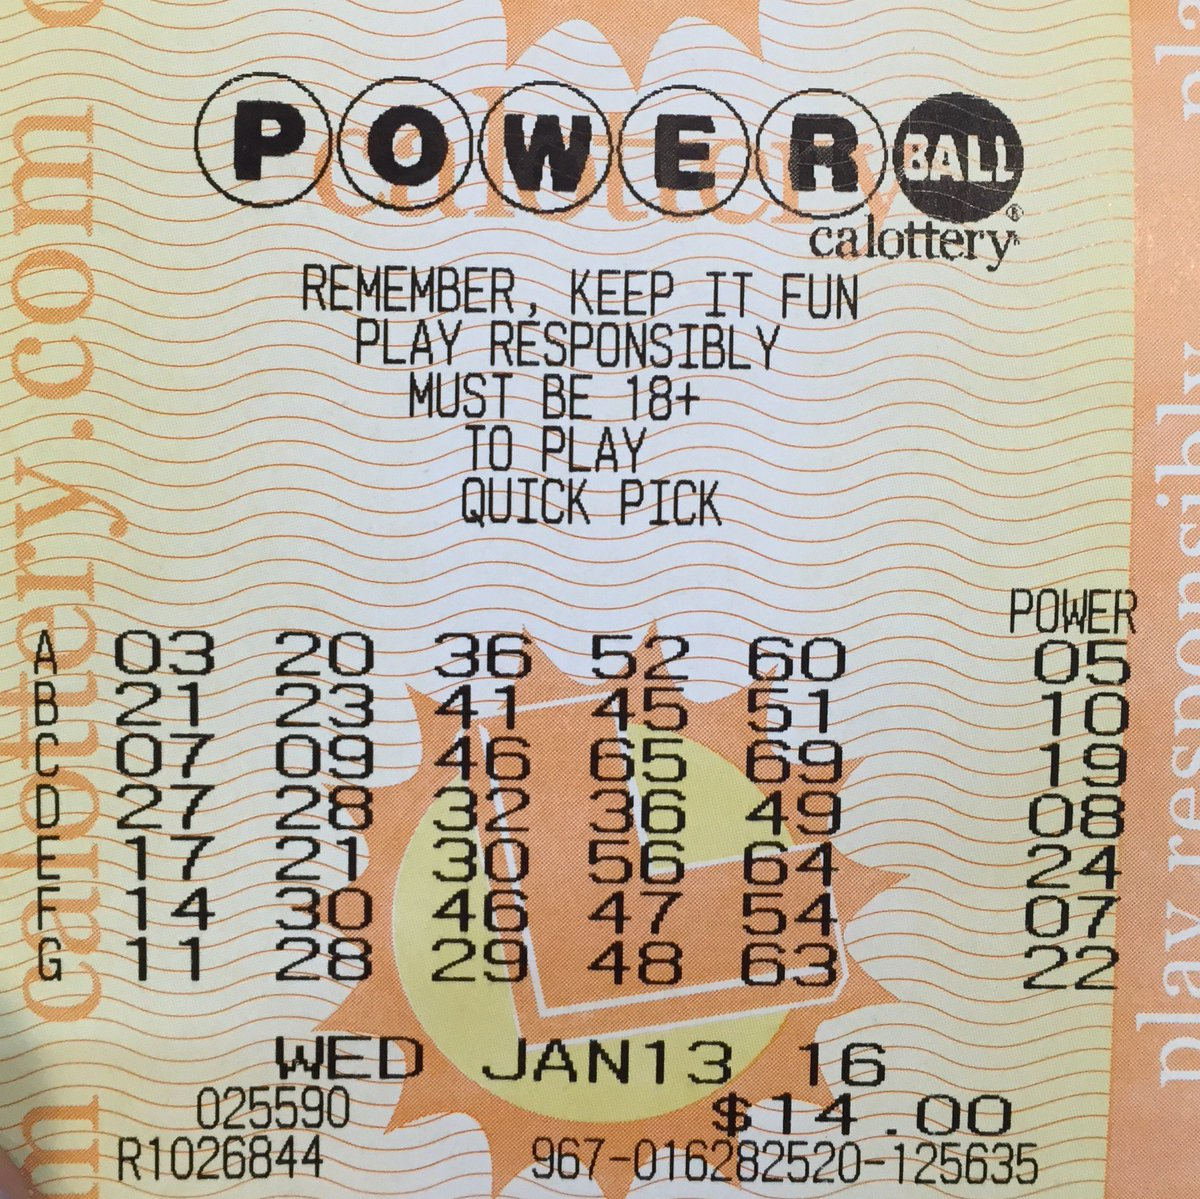 If I hit the 1.3 billion jackpot, I'll give $1000 to anyone who retweets this. https://t.co/NePqMJwfTI